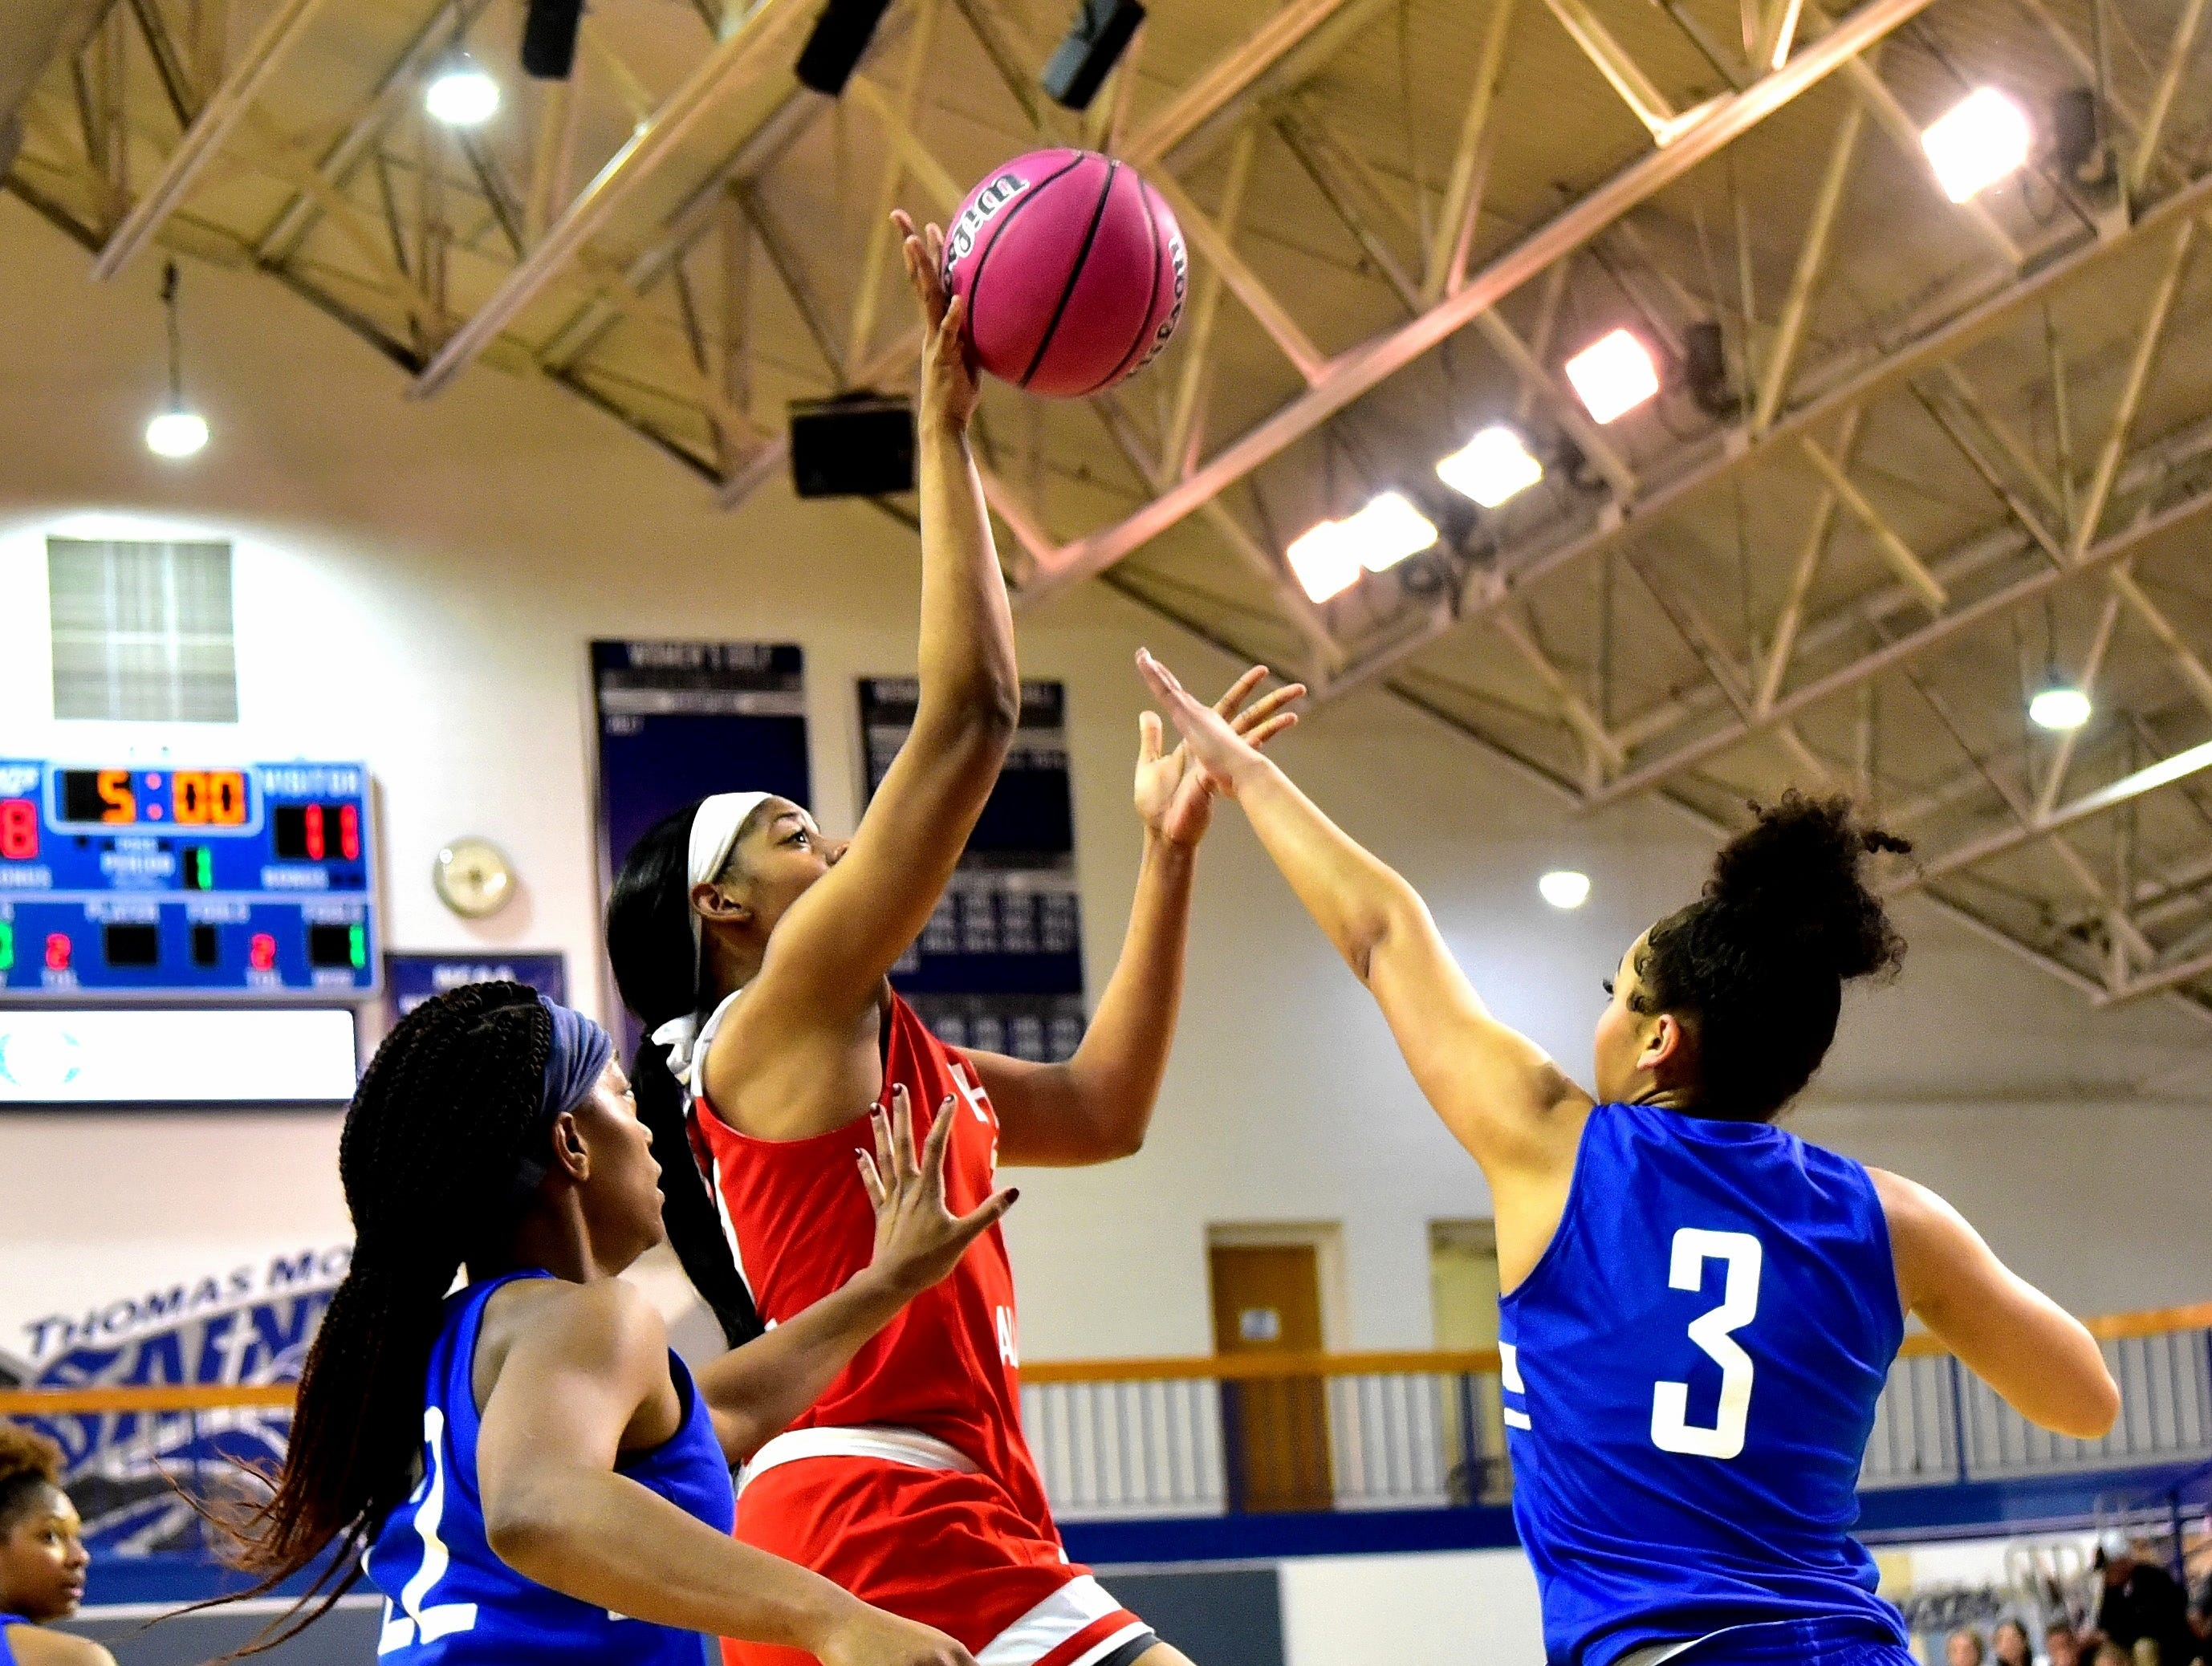 Kennedi Myles of Walnut Hills lofts a floater to the basket for the Ohio girls team at the 28th Annual Ohio-Kentucky All Star Games played at Thomas More University, April 13, 2019